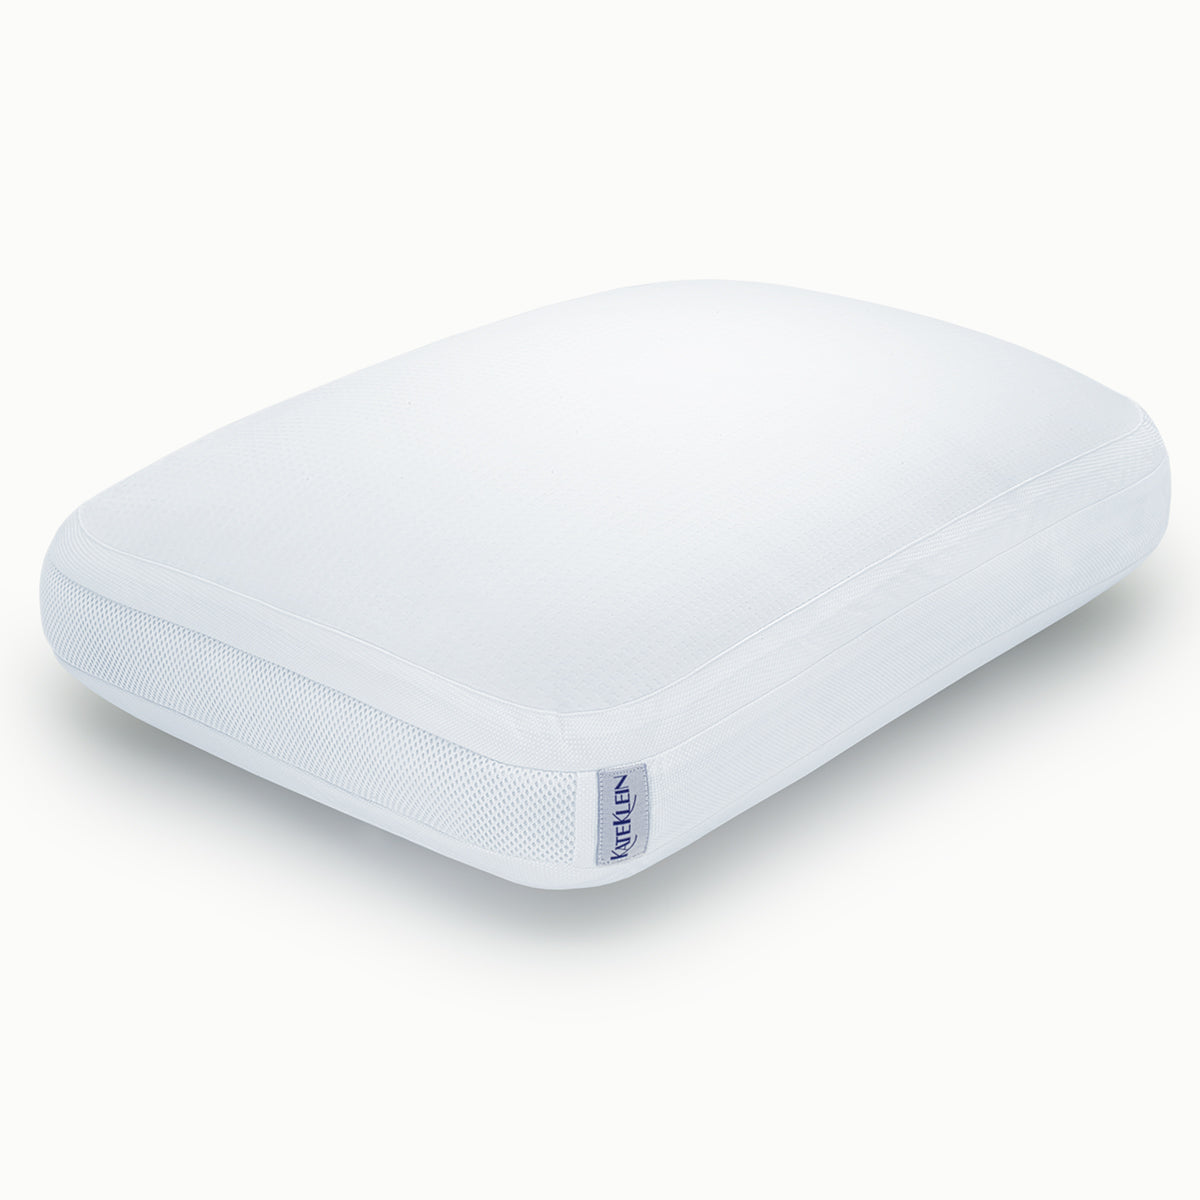 KateKlein Clean Pillow